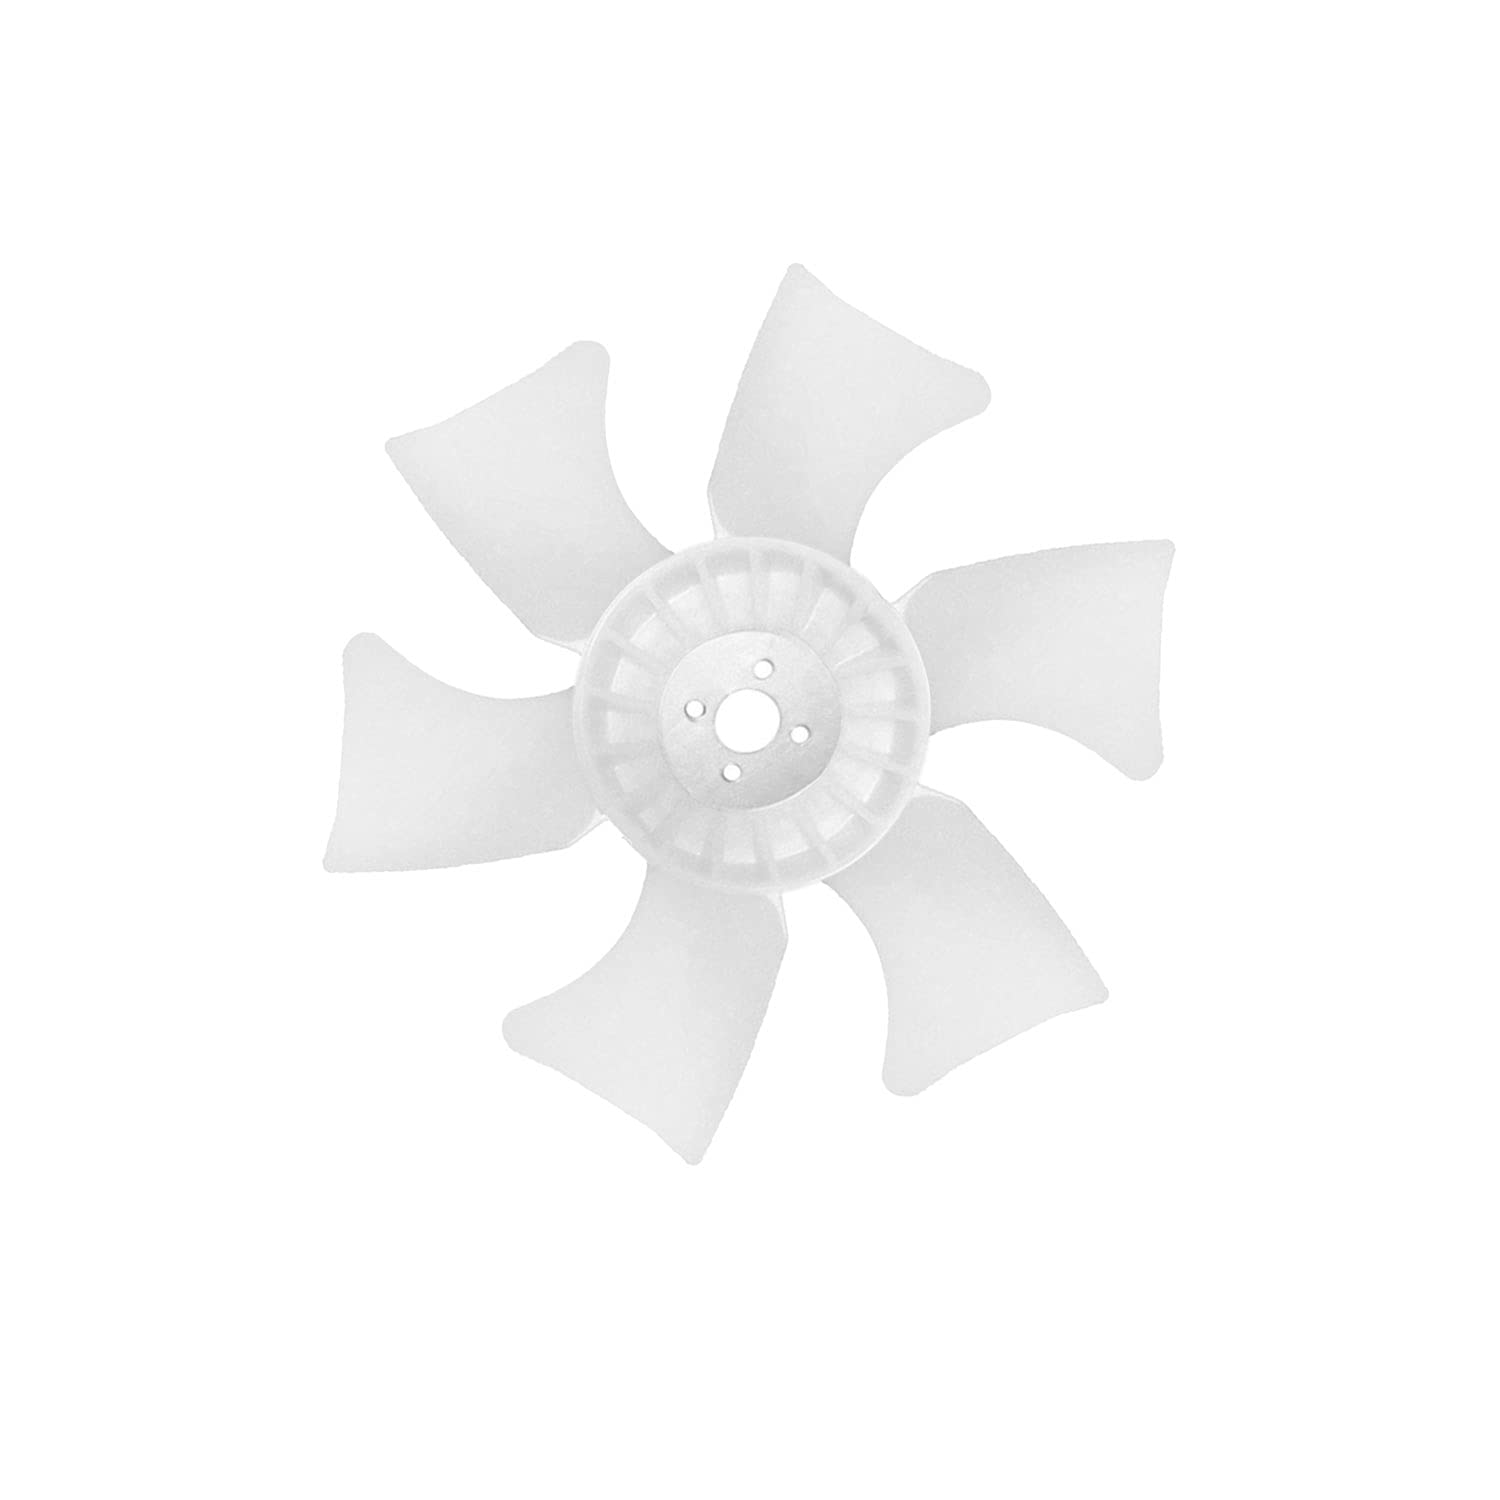 Disenparts 1629974110 Cooling Fan Radiator 16299-74110 Plastic Super Special SALE held C Tucson Mall